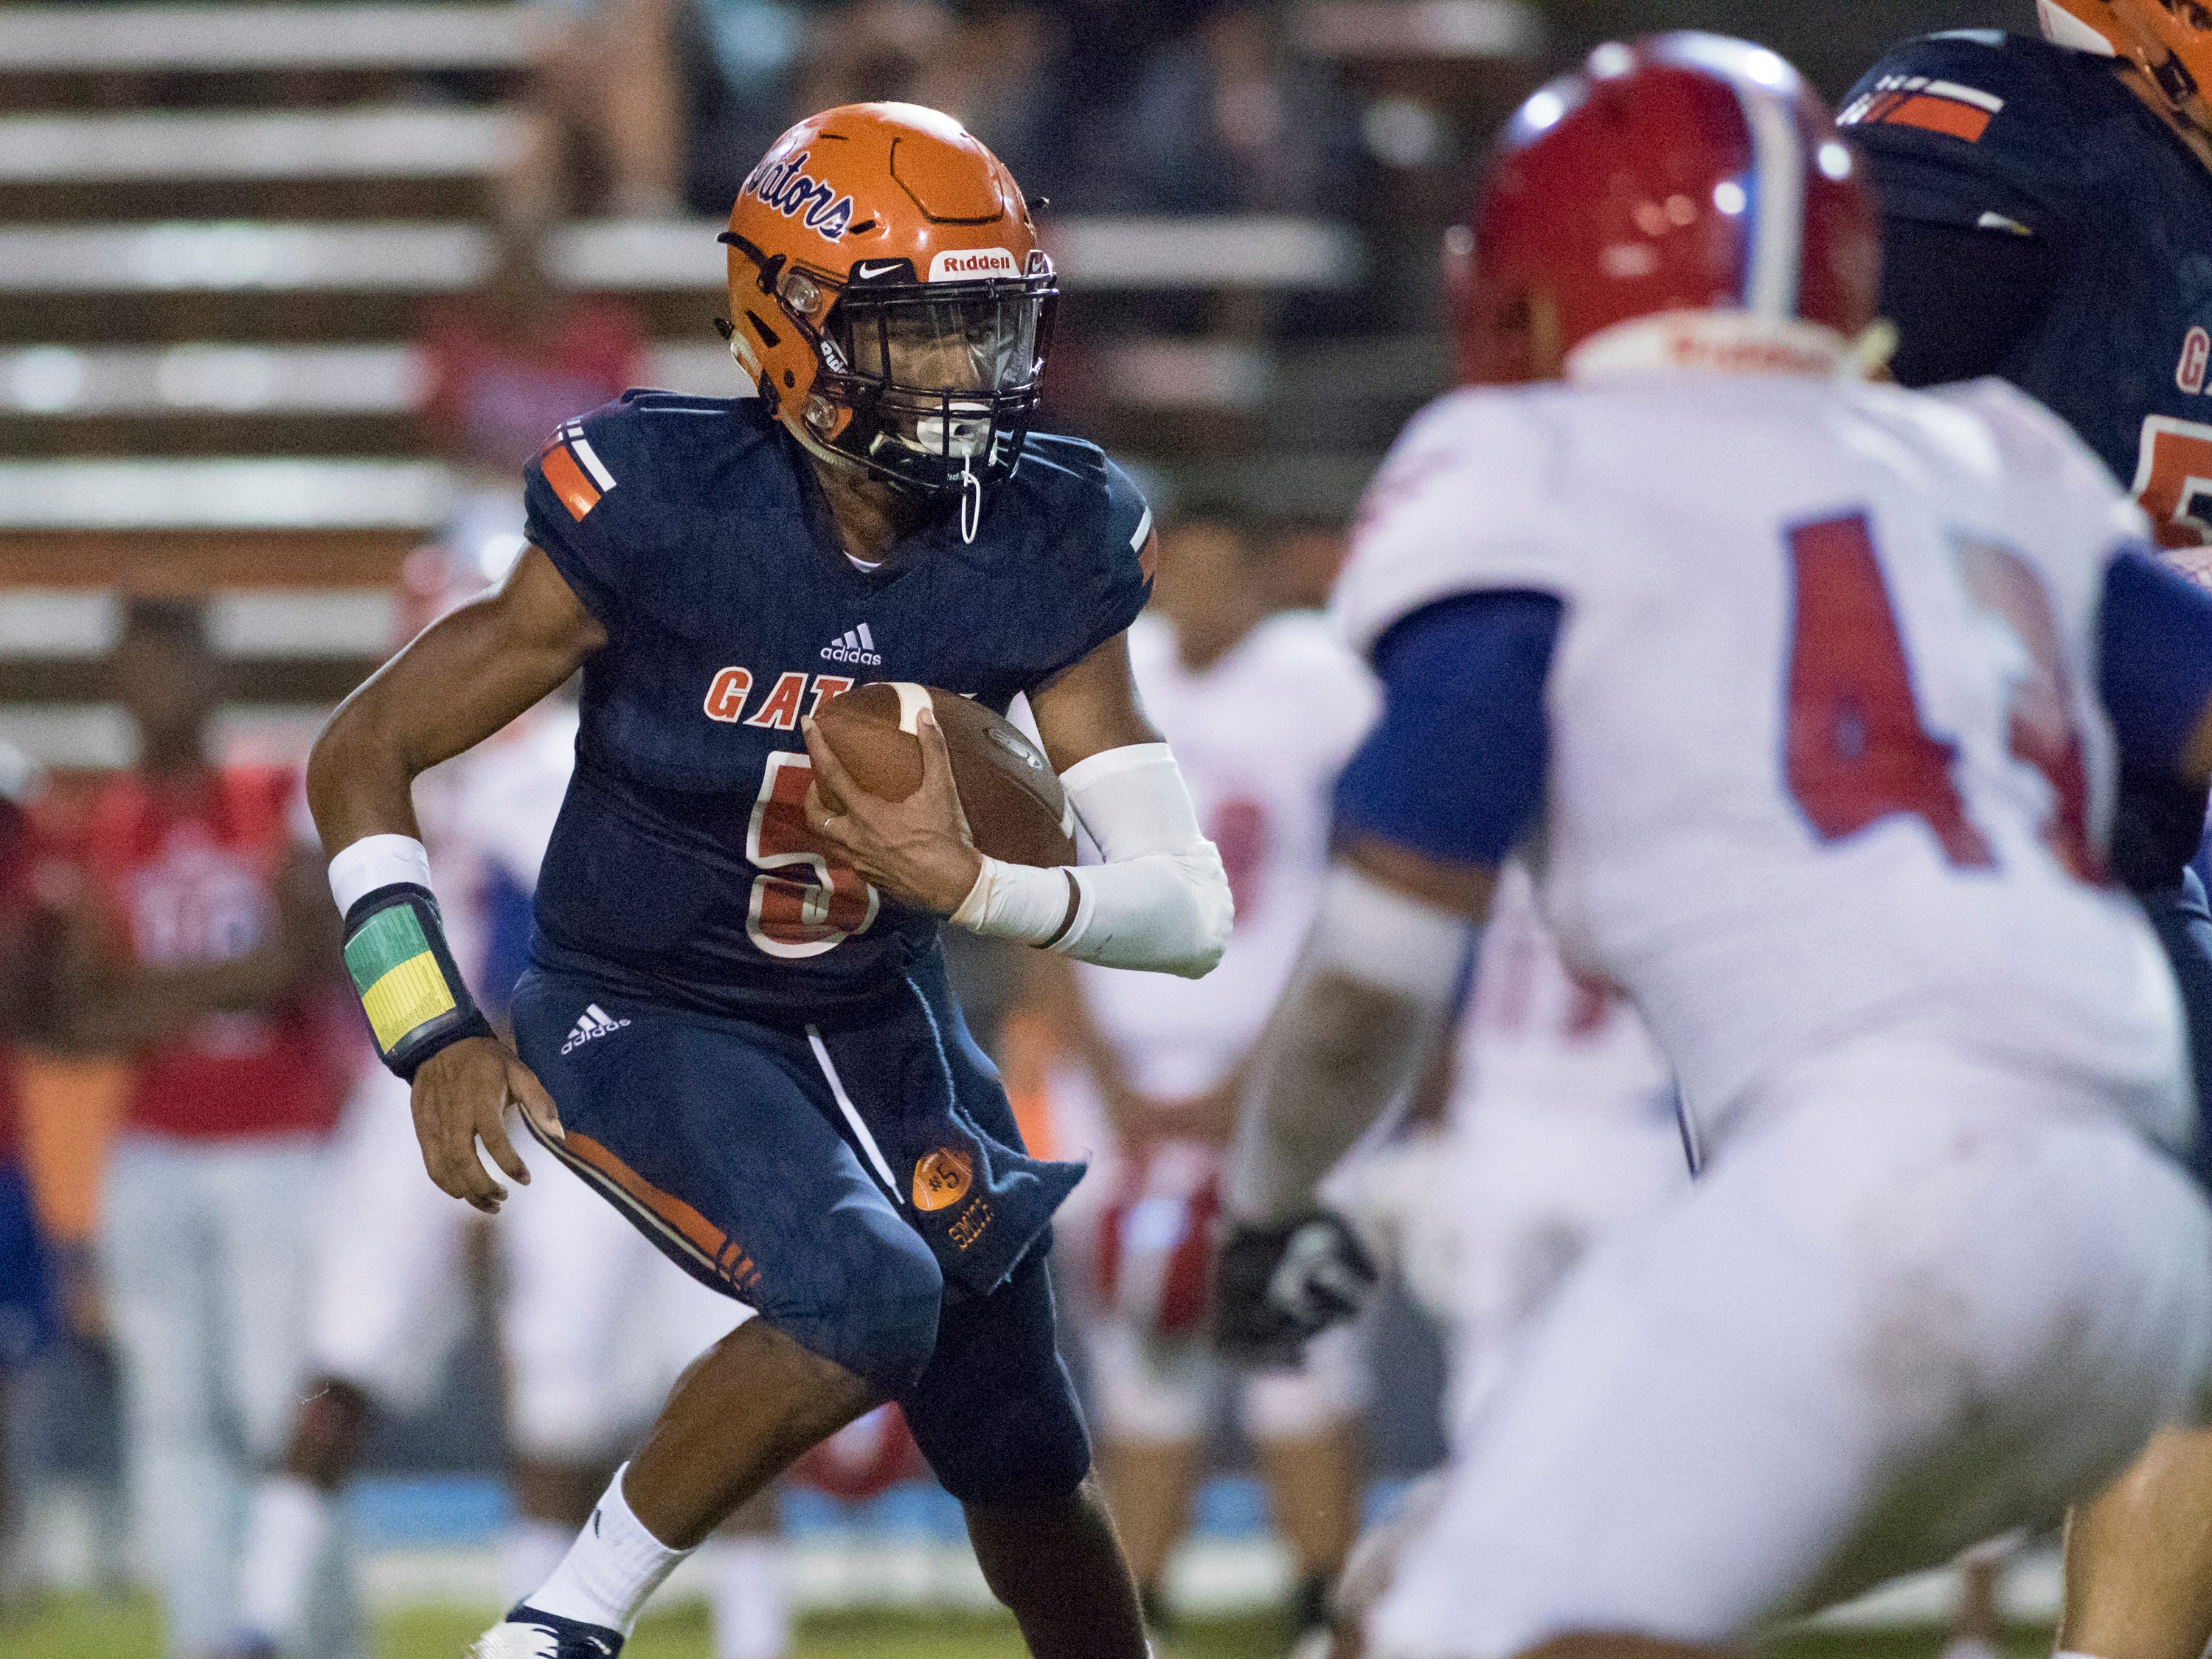 Quarterback Av Smith (5) looks for running room as he keeps the ball during the Pine Forest vs Escambia football game at Escambia High School in Pensacola on Friday, September 28, 2018.